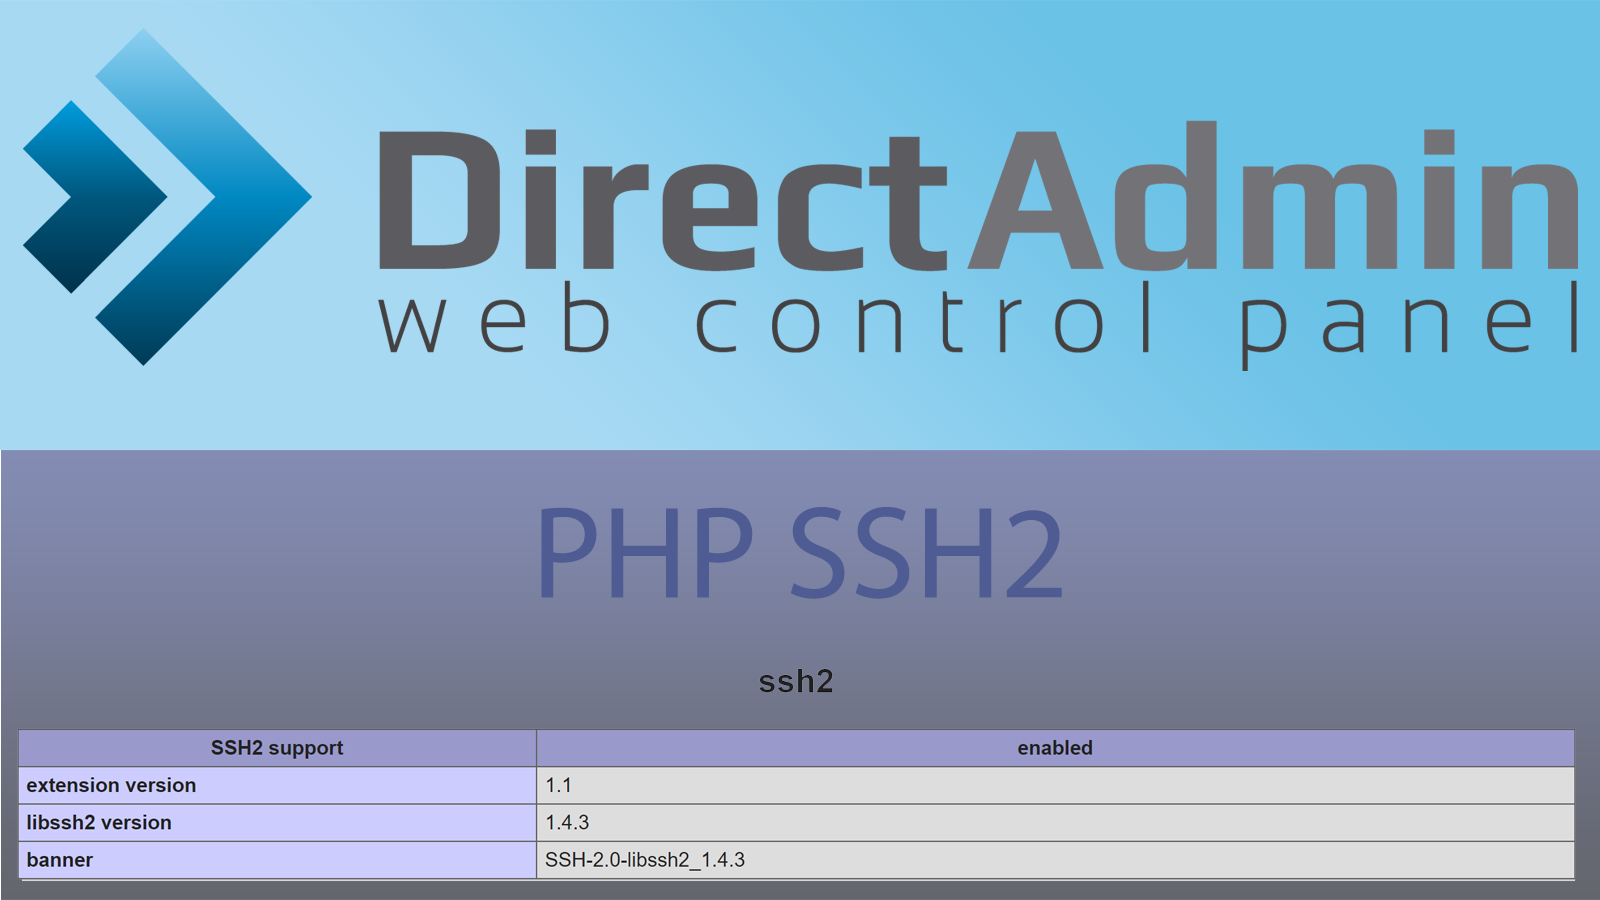 Installing ssh2 extension for PHP on DirectAdmin server